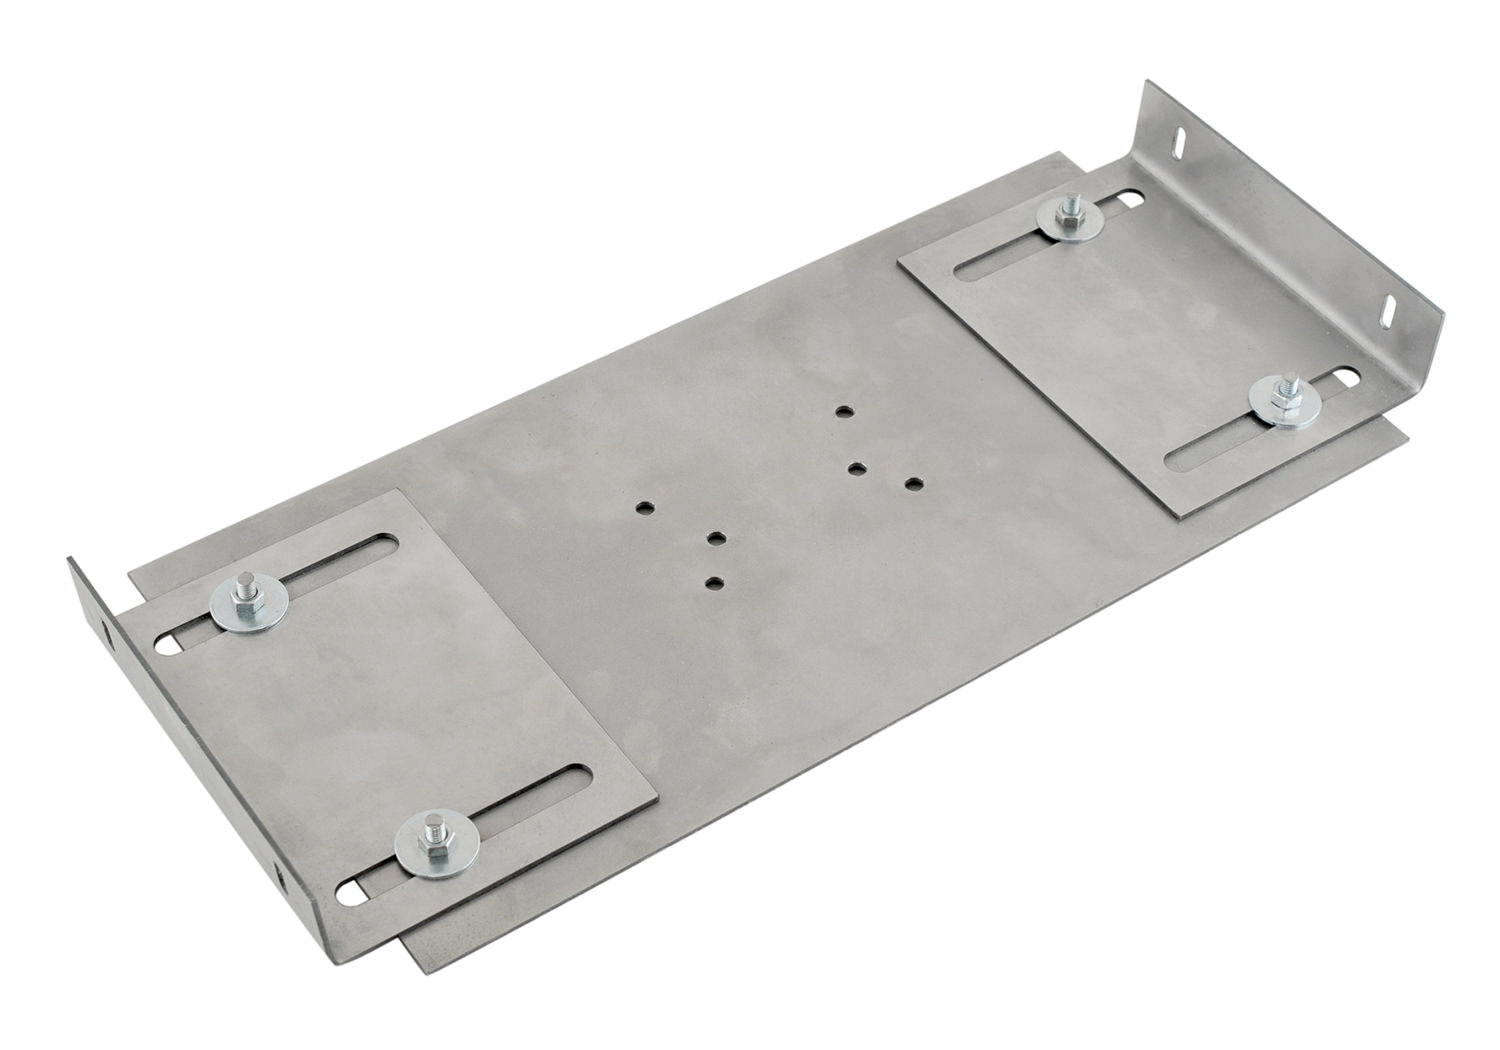 Vado studfast concealed wall bracket for shower valve wg studfast n p